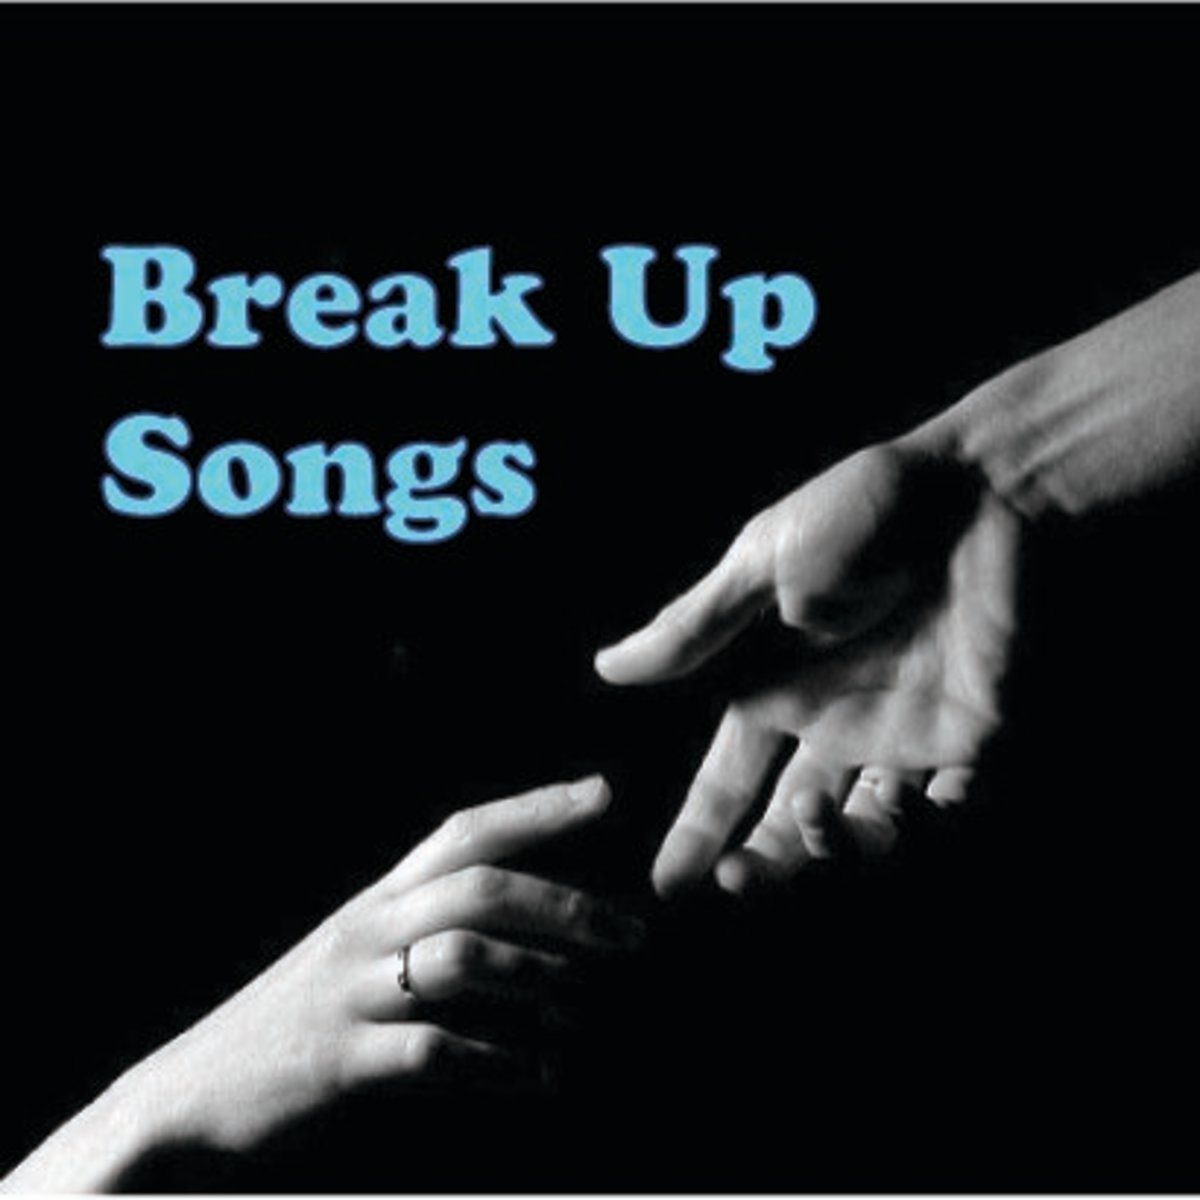 Ten Break-Up Songs to Help You Get Over It